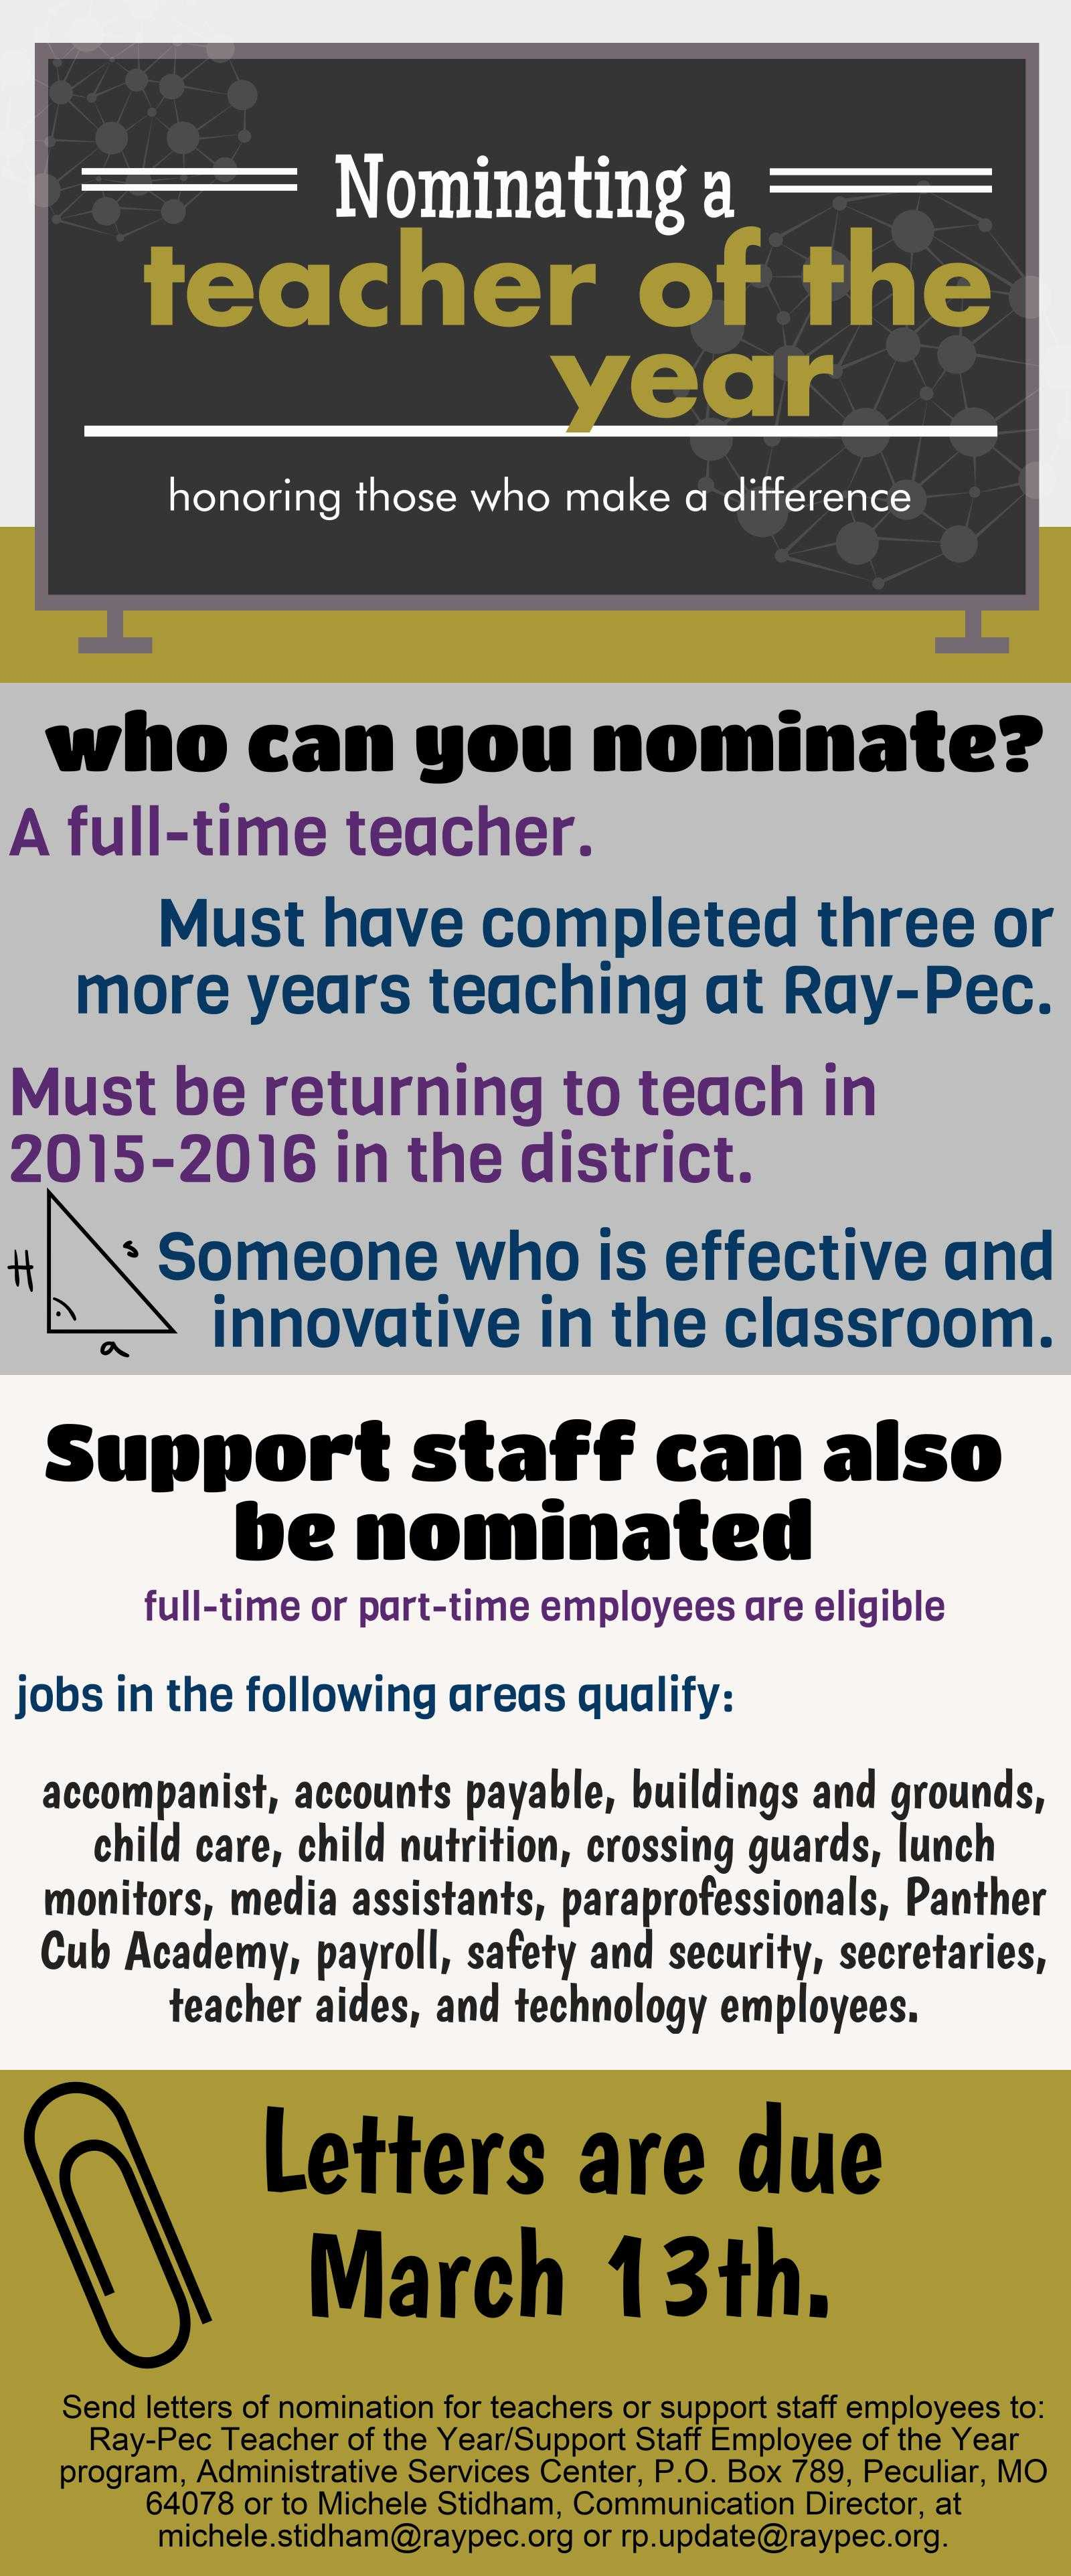 raypecnow   teacher of the year nominations